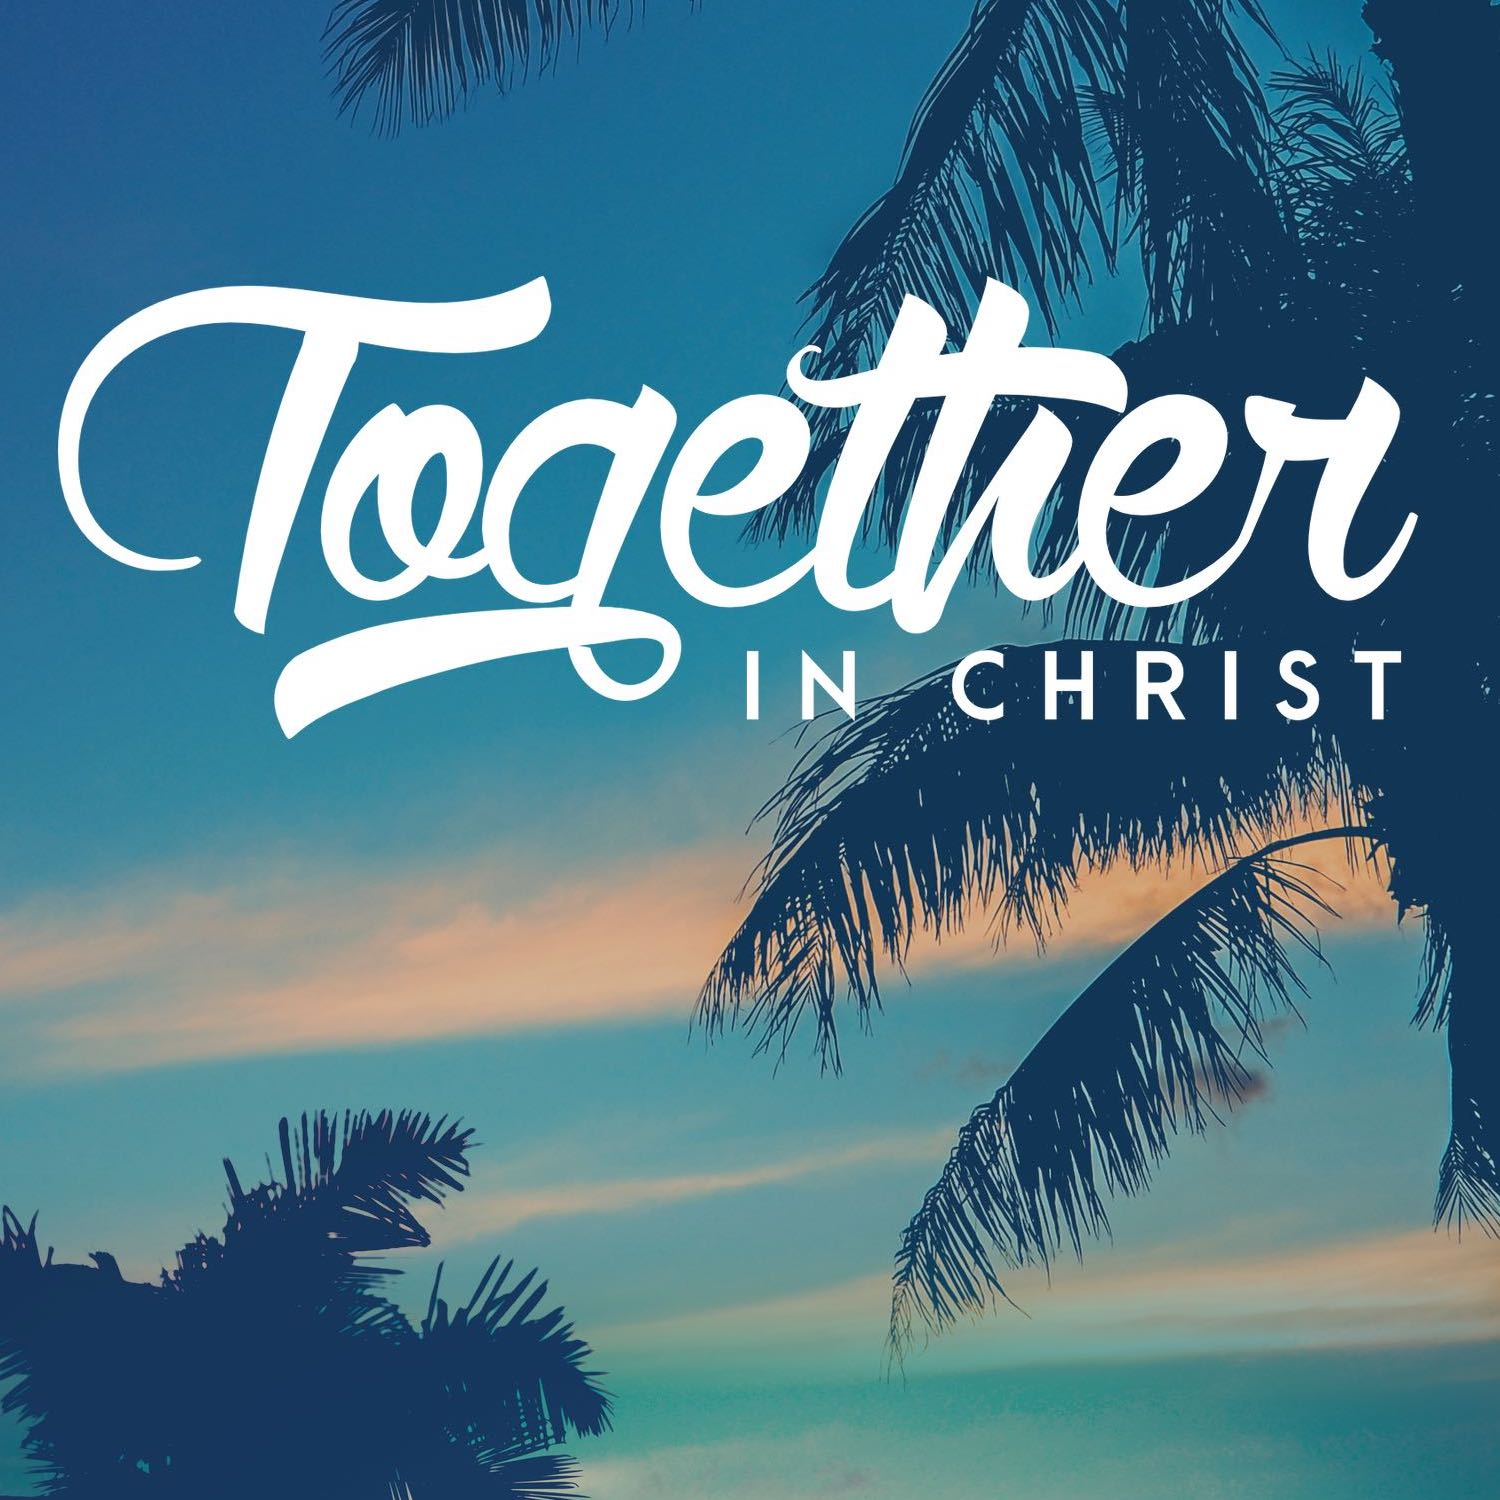 Expecting Jesus Together